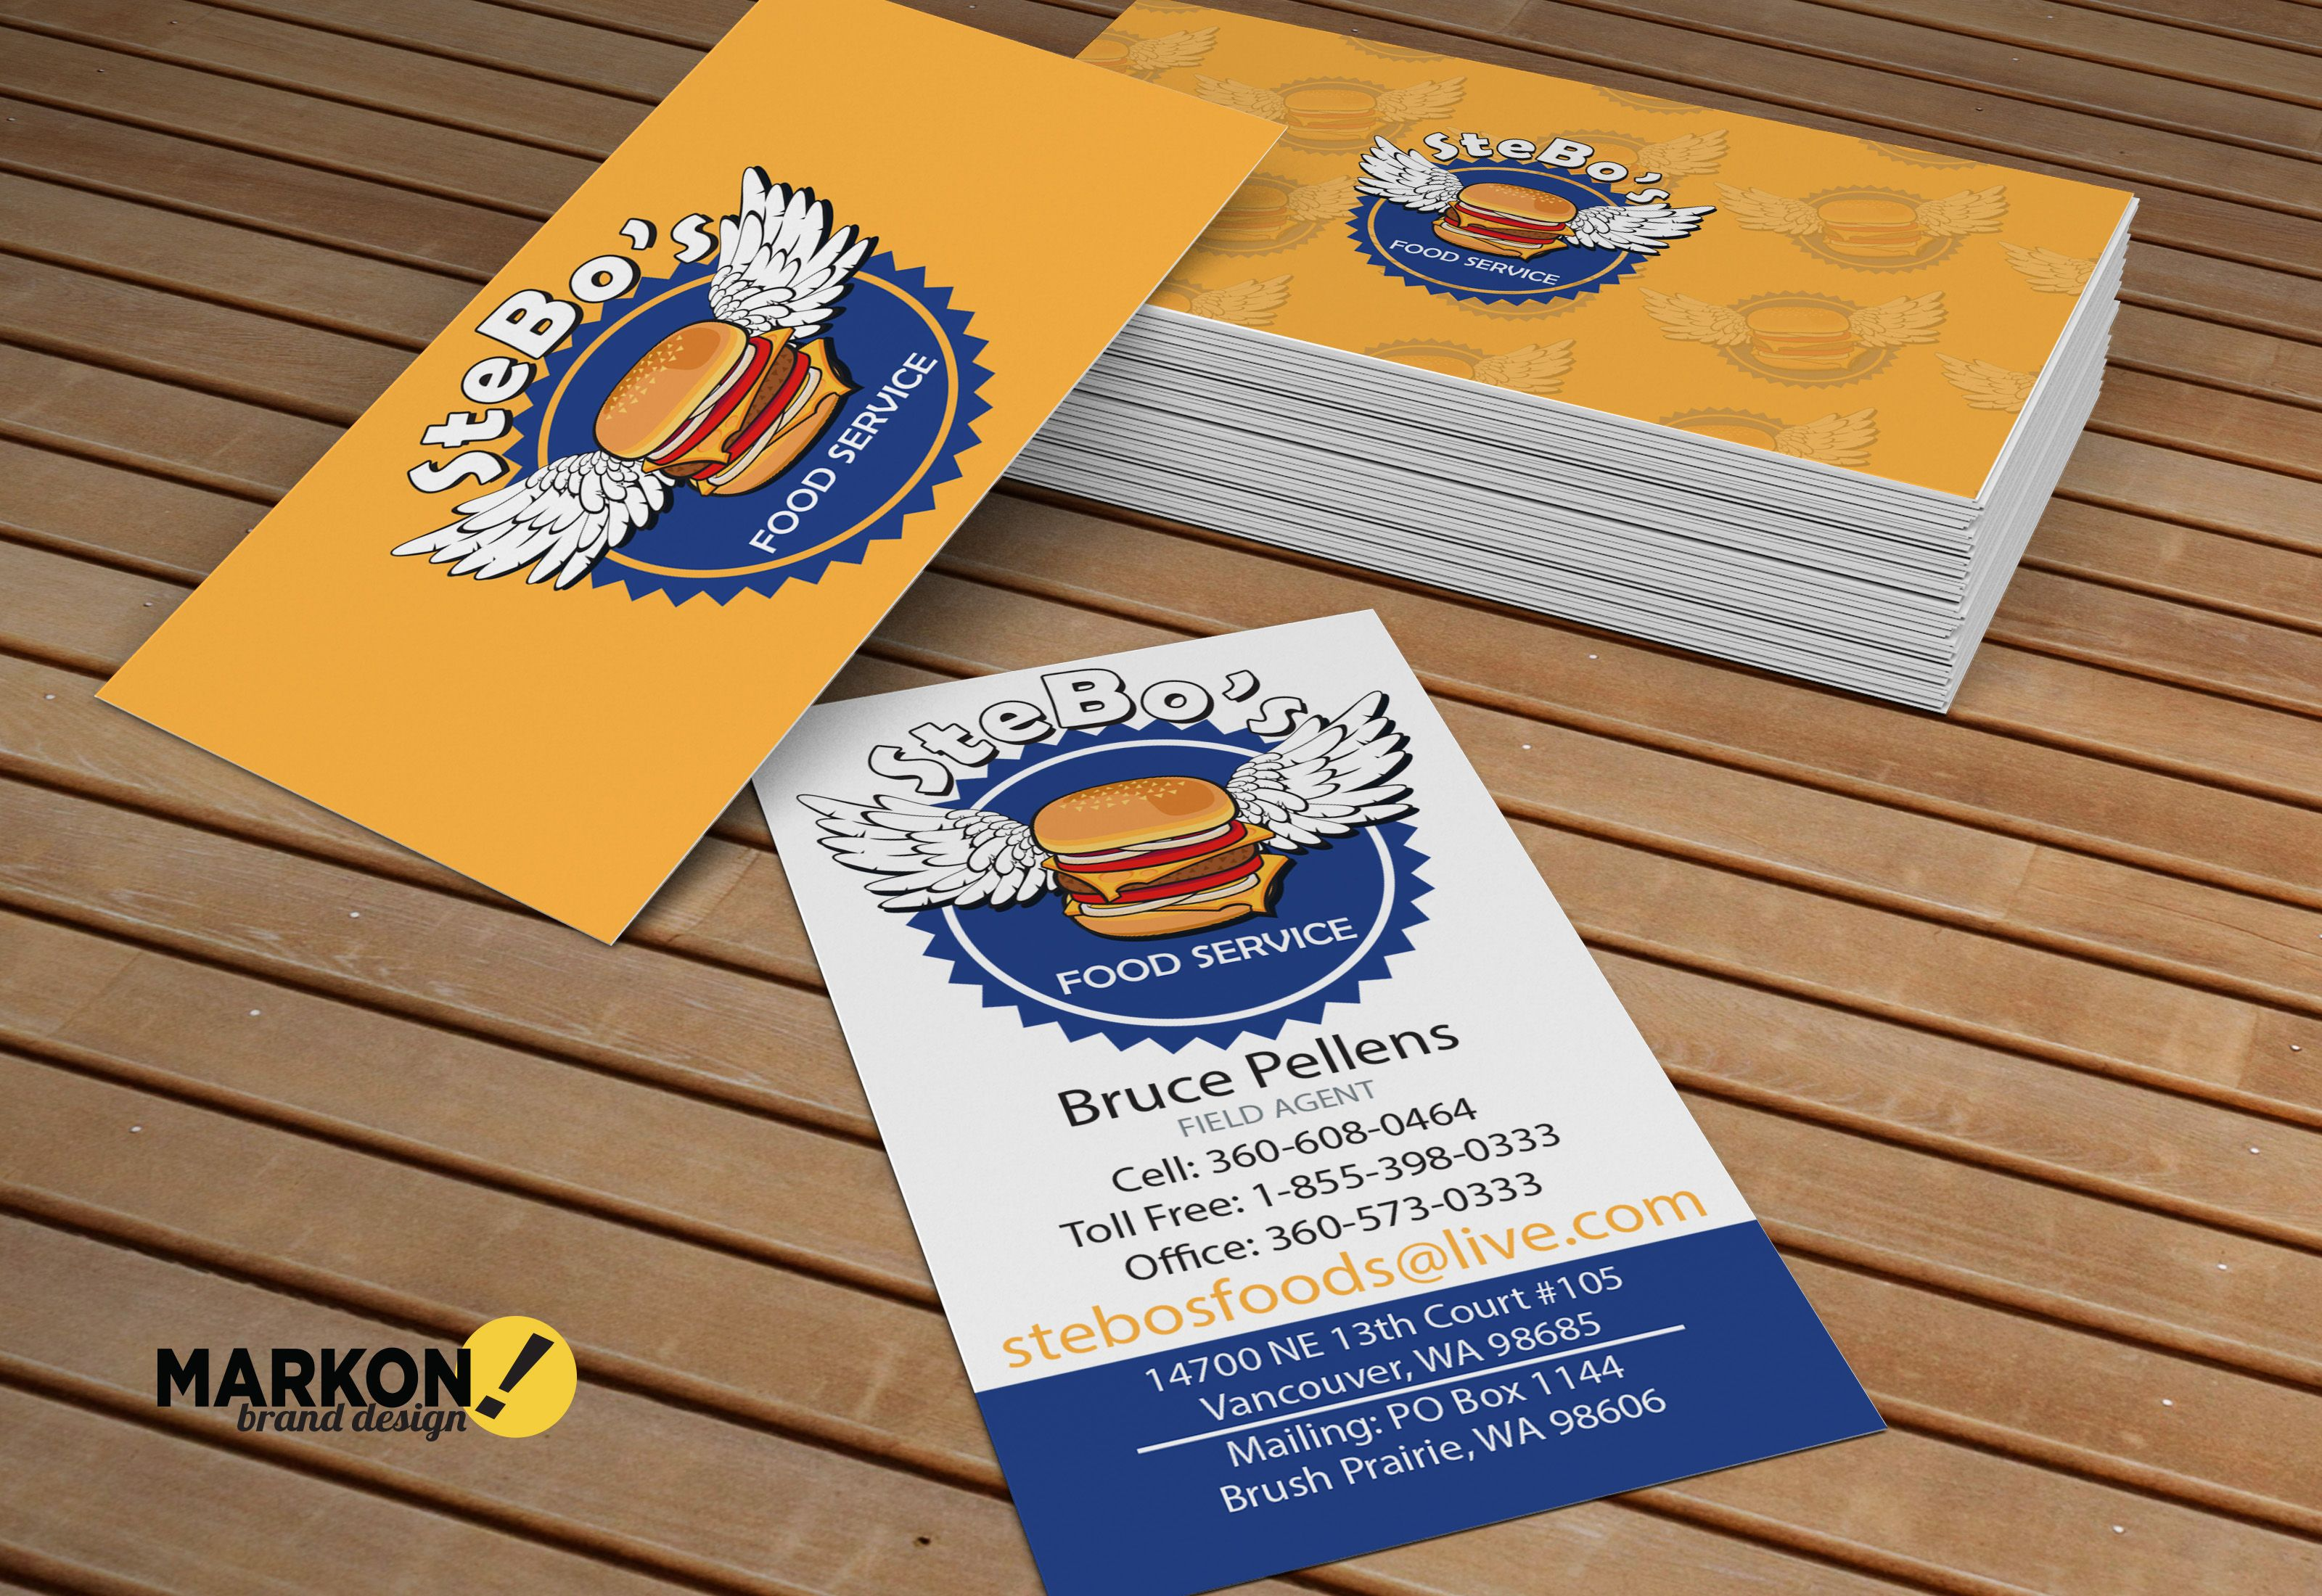 Business cards for stebos food service we love the yellow and blue business cards for stebos food service we love the yellow and blue the burger reheart Choice Image